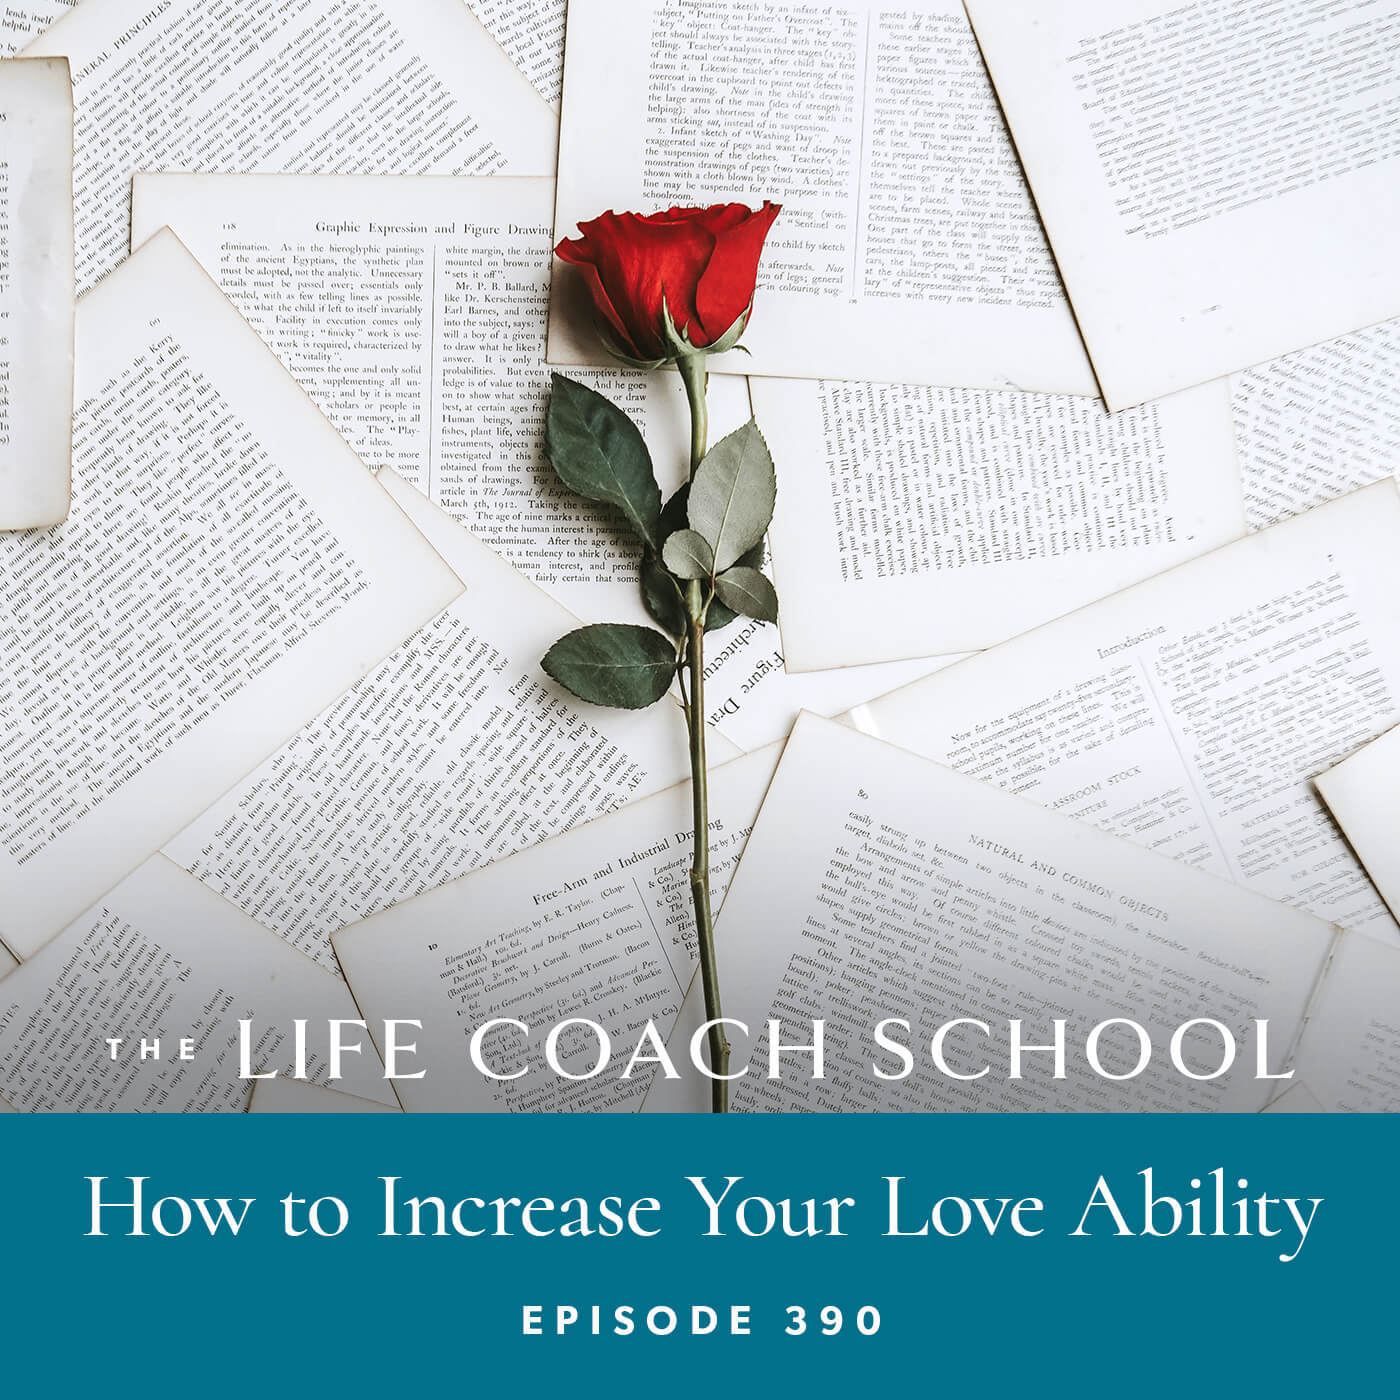 The Life Coach School Podcast with Brooke Castillo | How to Increase Your Love Ability